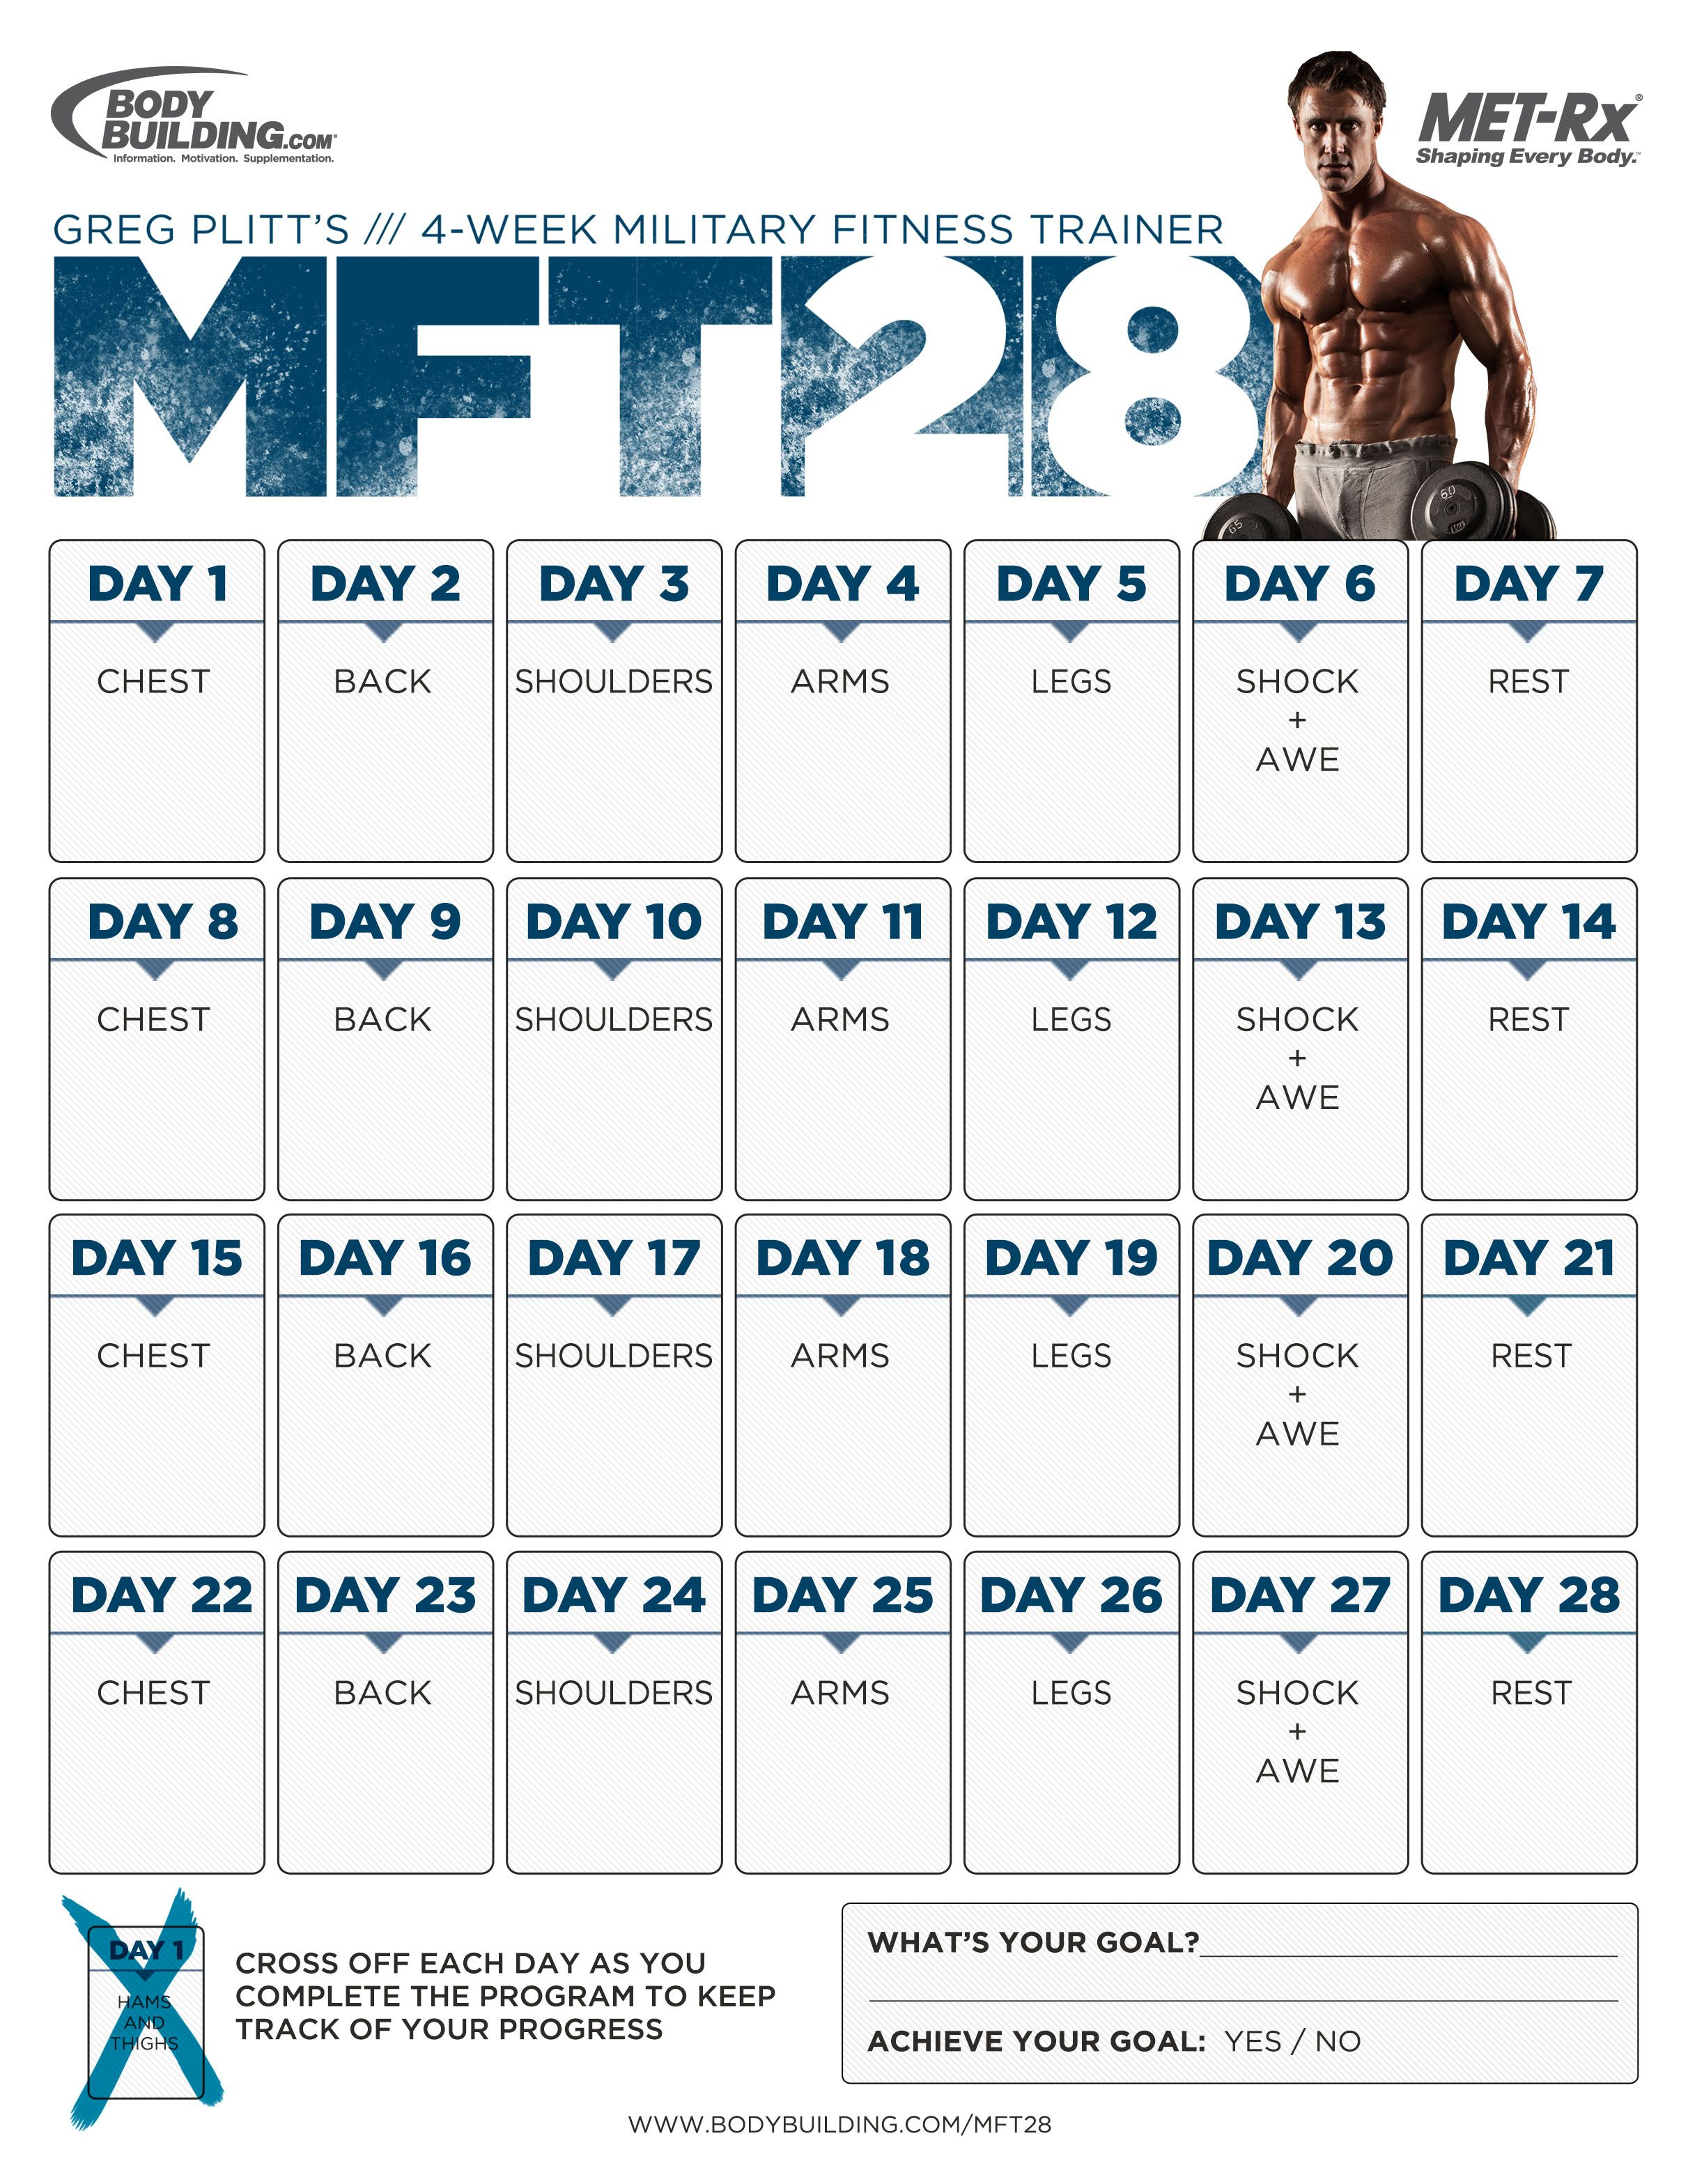 Bodybuilding Com Workout Routine For Mass